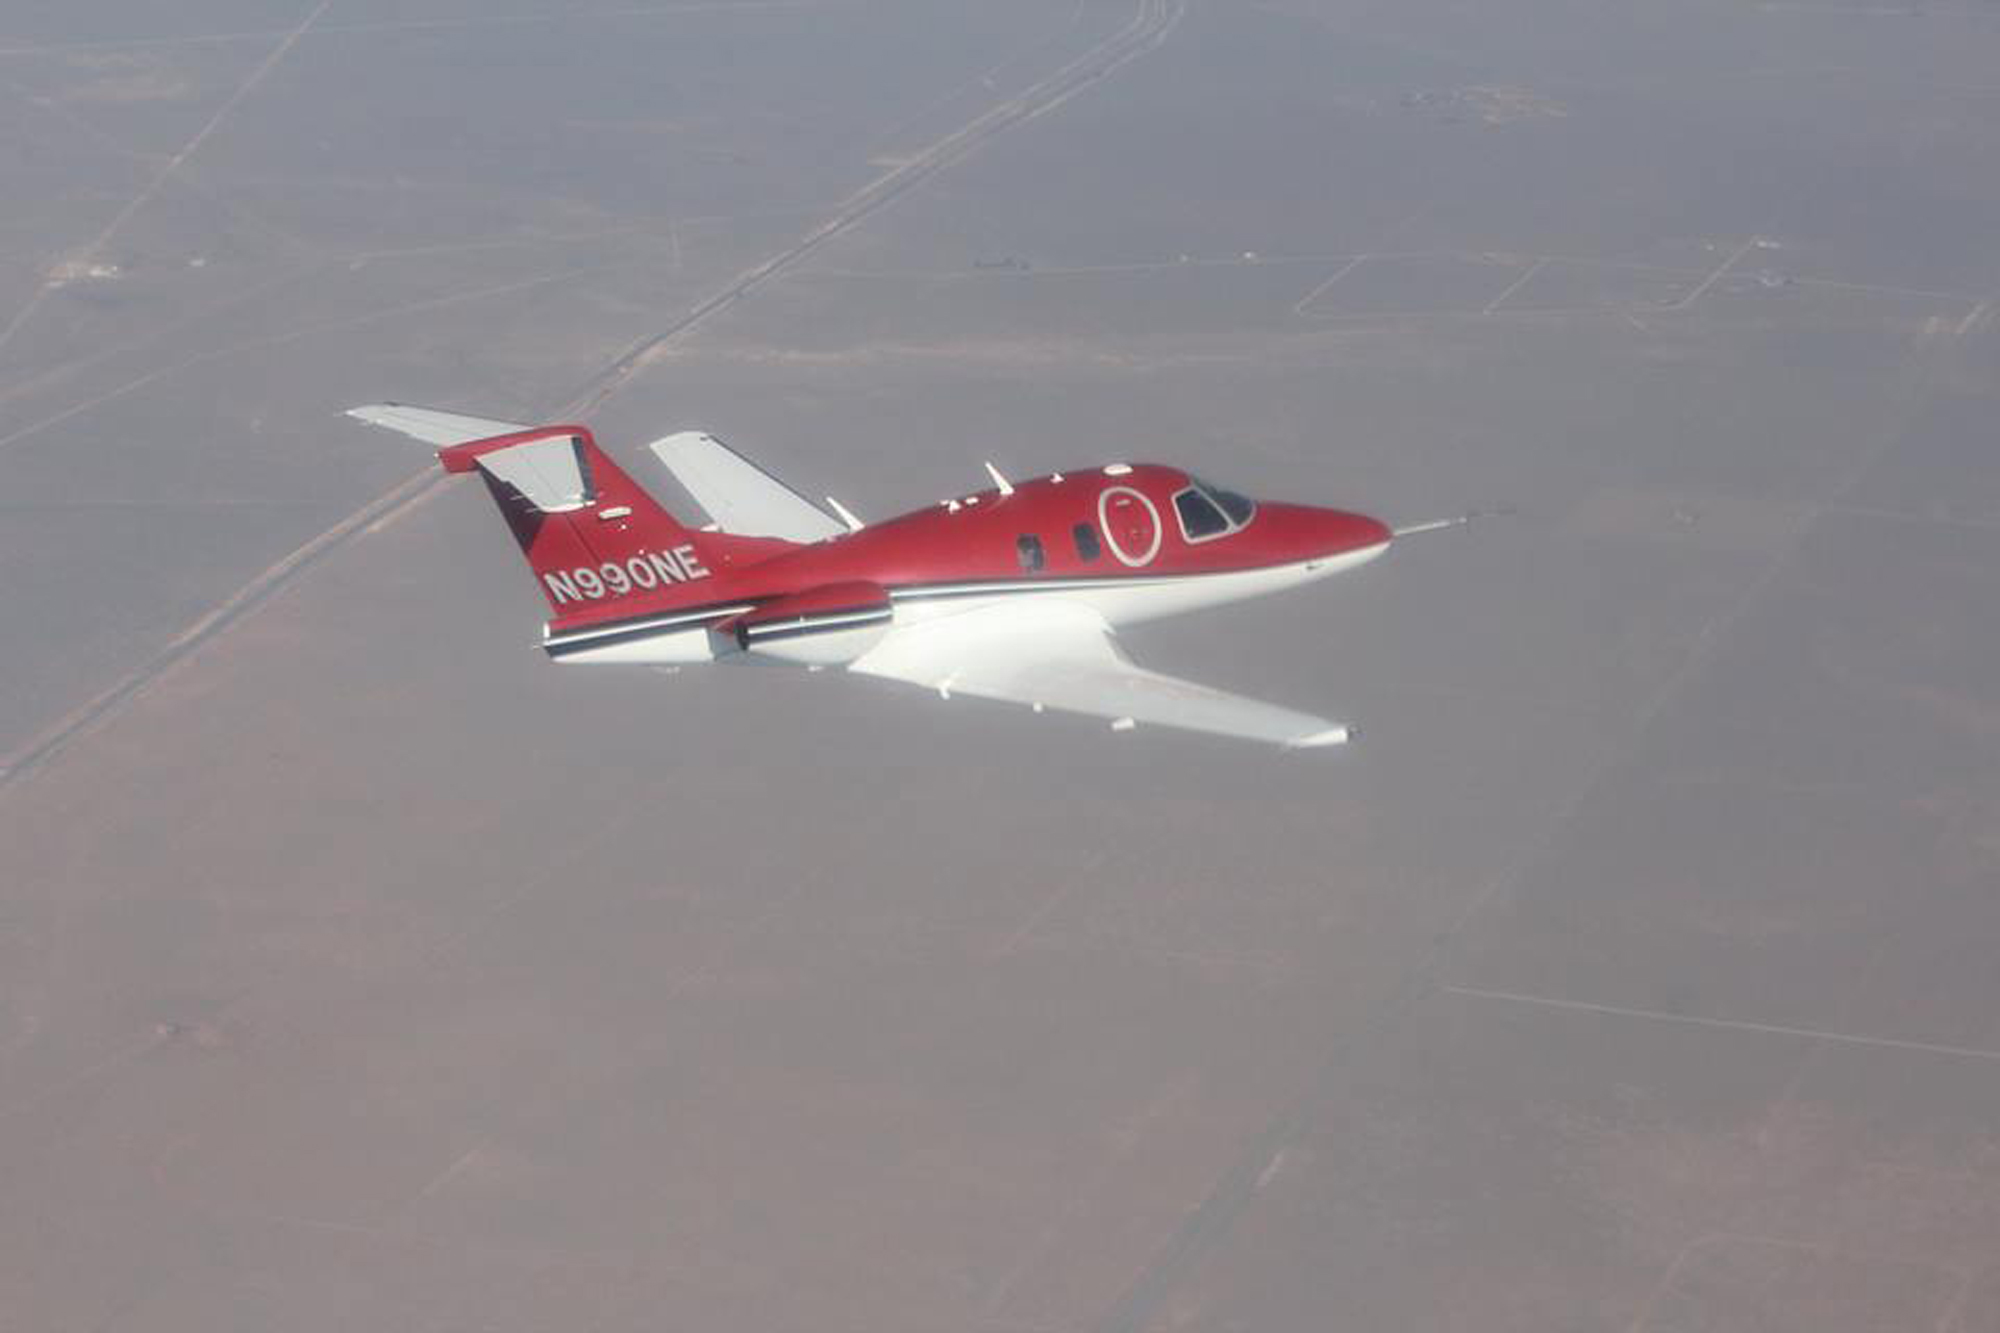 Eclipse 700 Testbed Takes Flight   Business Aviation News